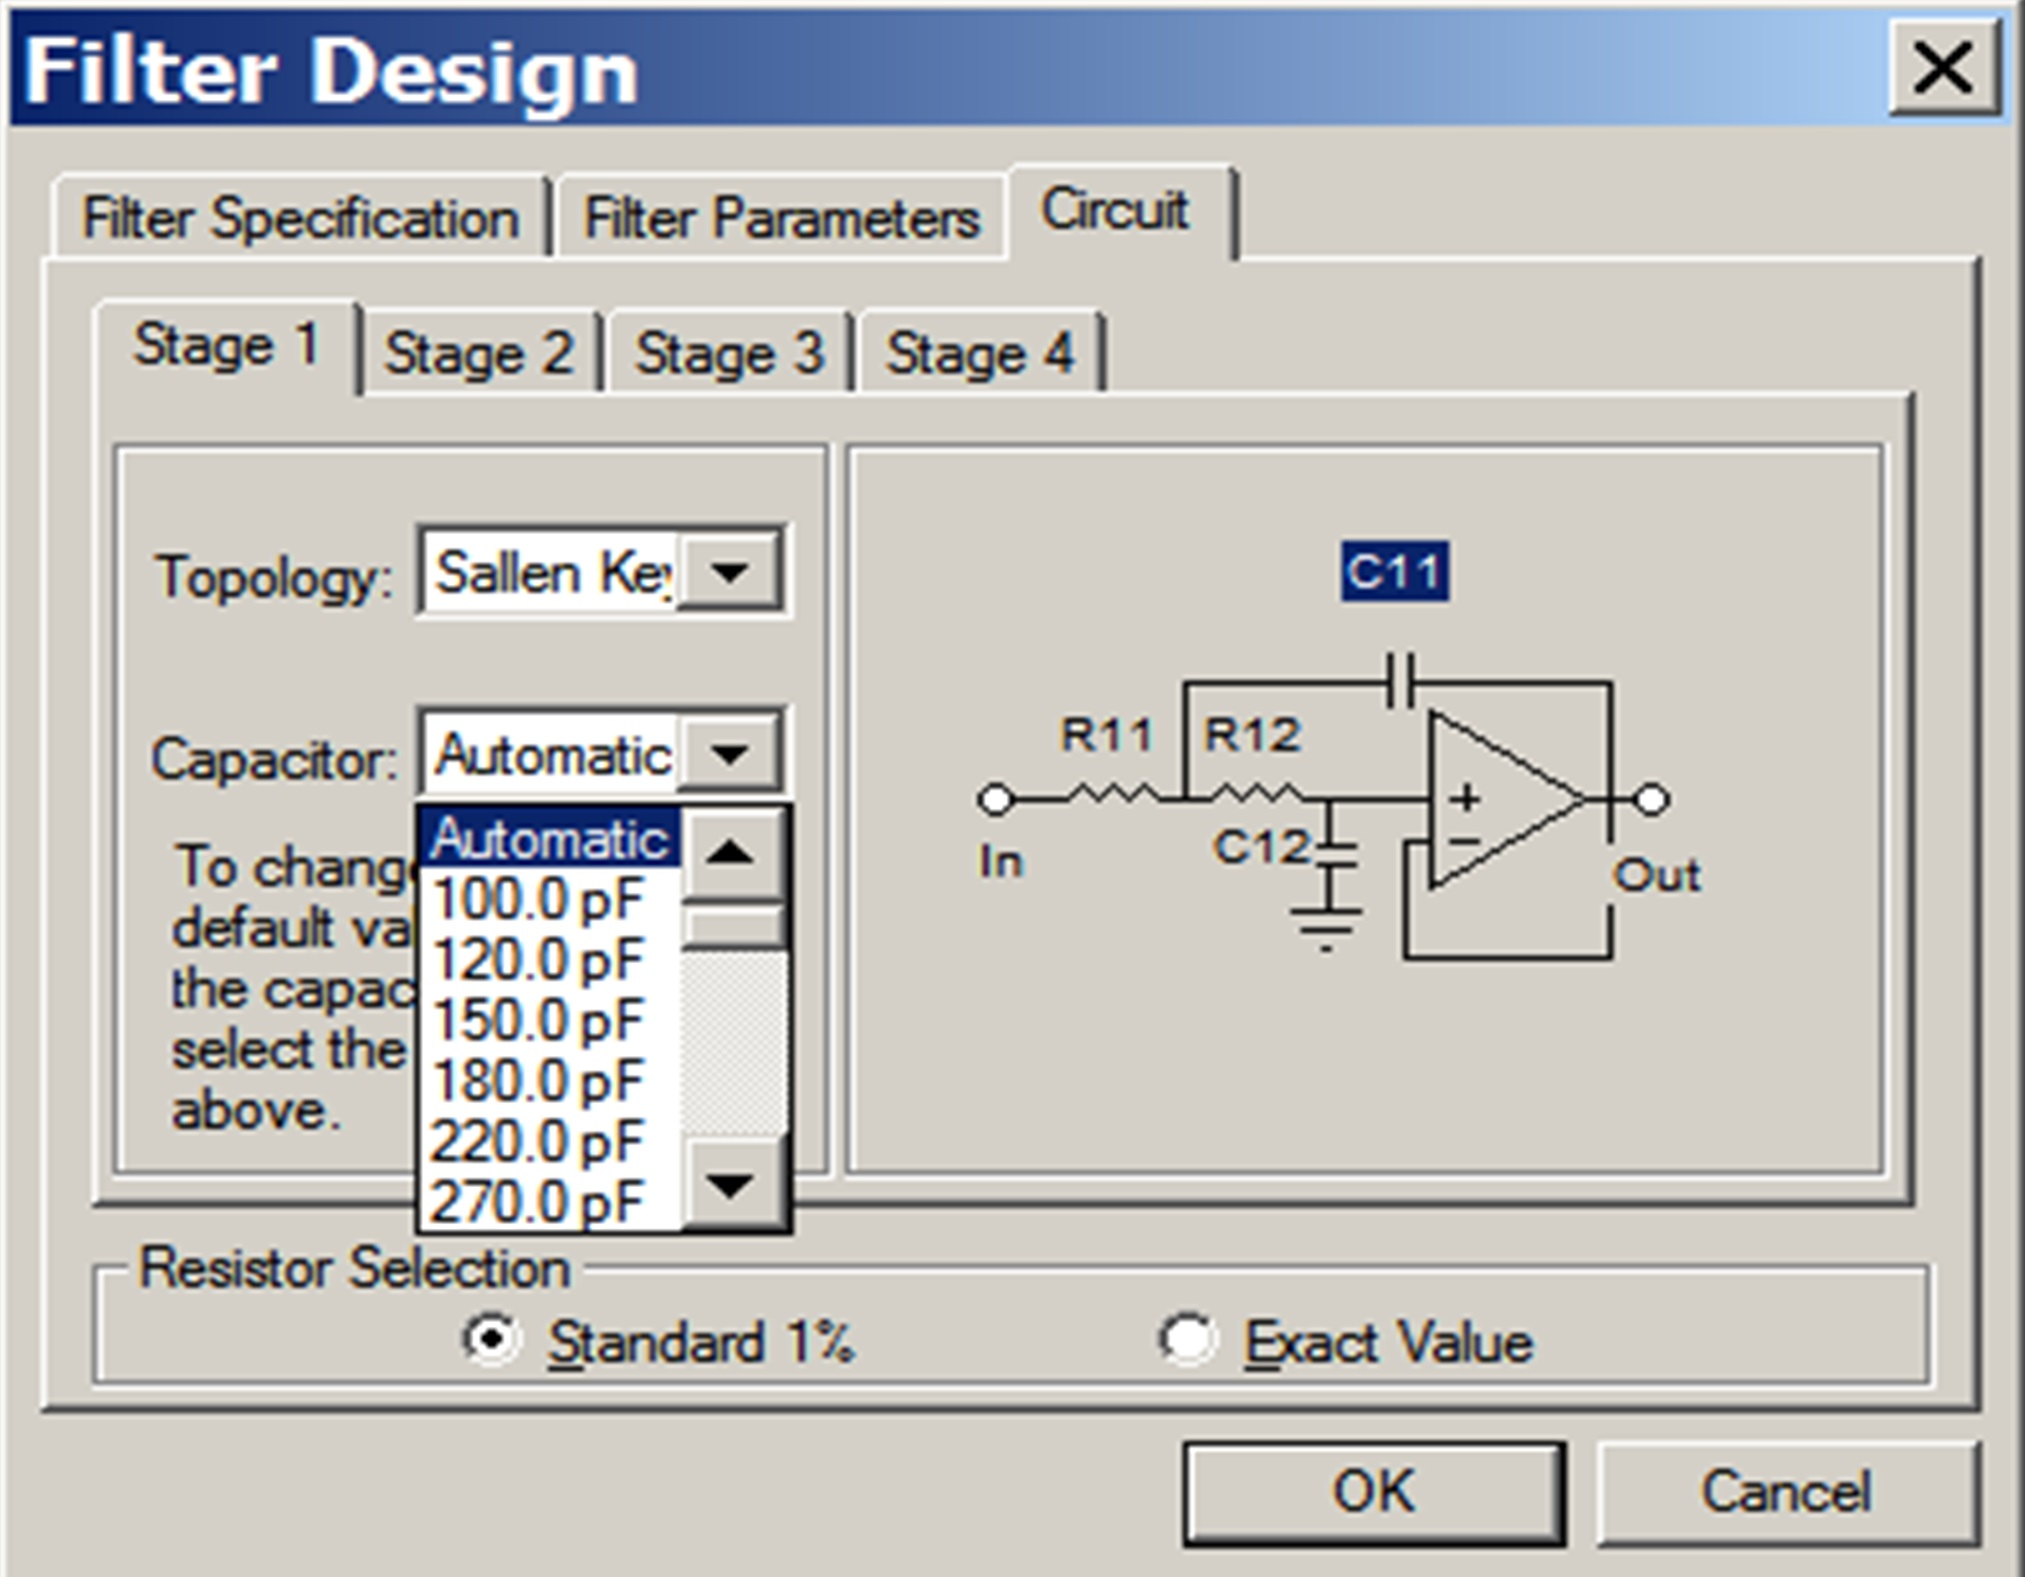 Filter Design Example Developer Help Circuits Gt Ac Power And Phone Line Homemade Circuit 7 The Frequency View Displays